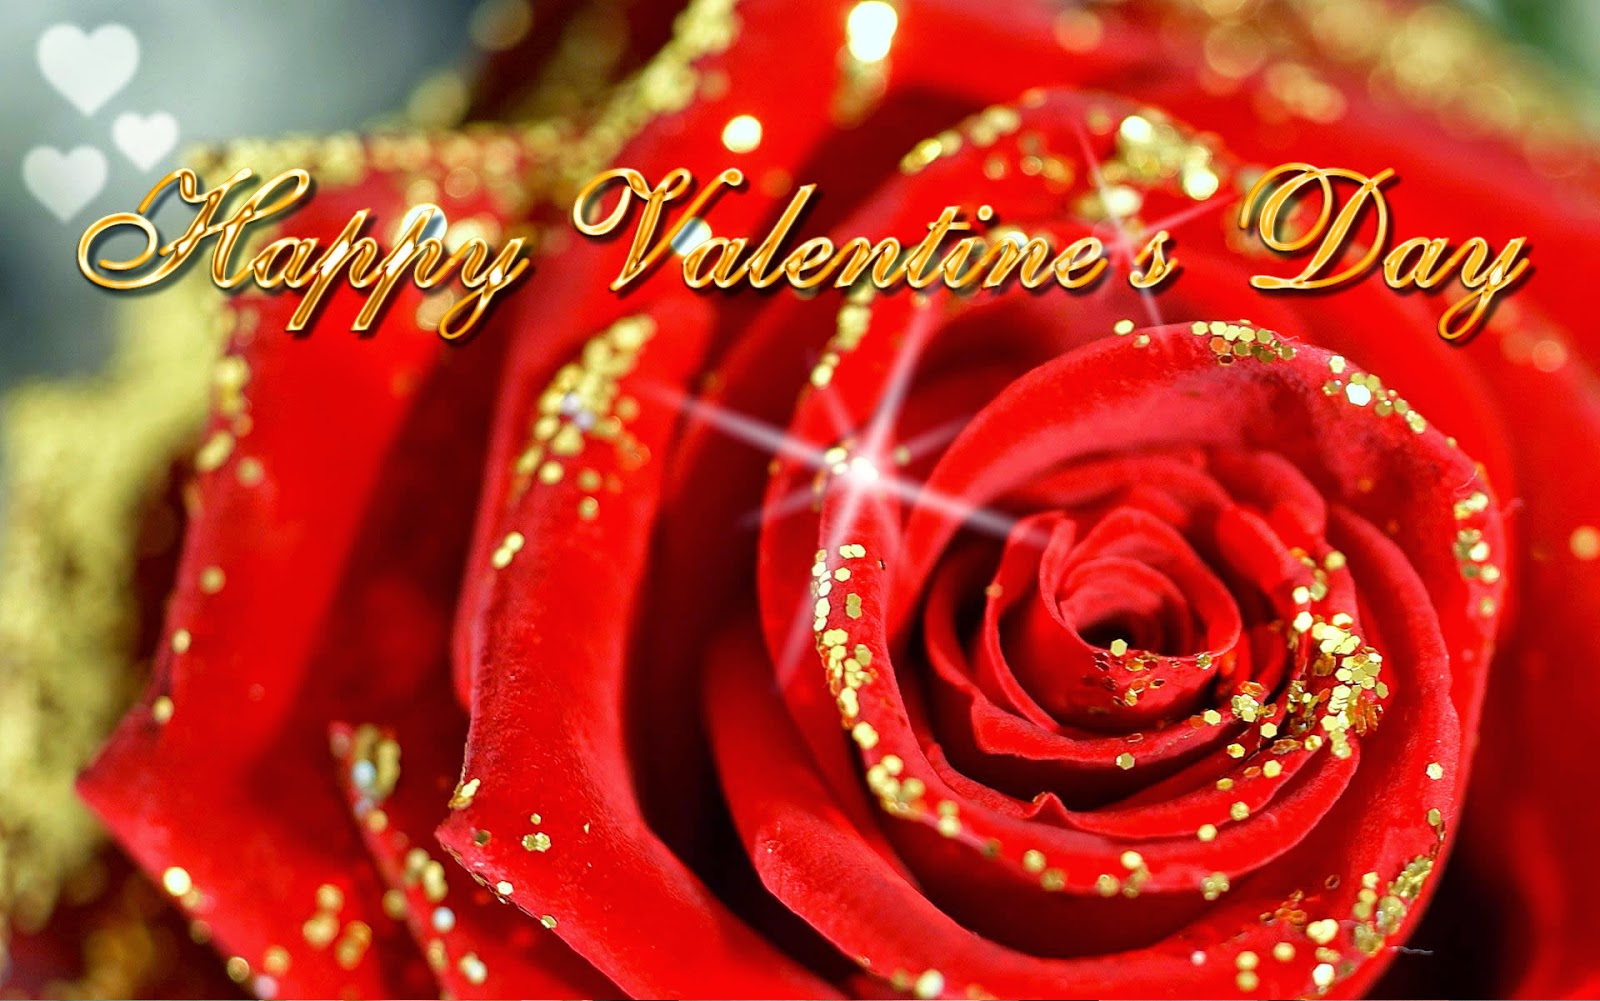 Happy Valentines Day Ecards Quotes Free Download Wallpapers For